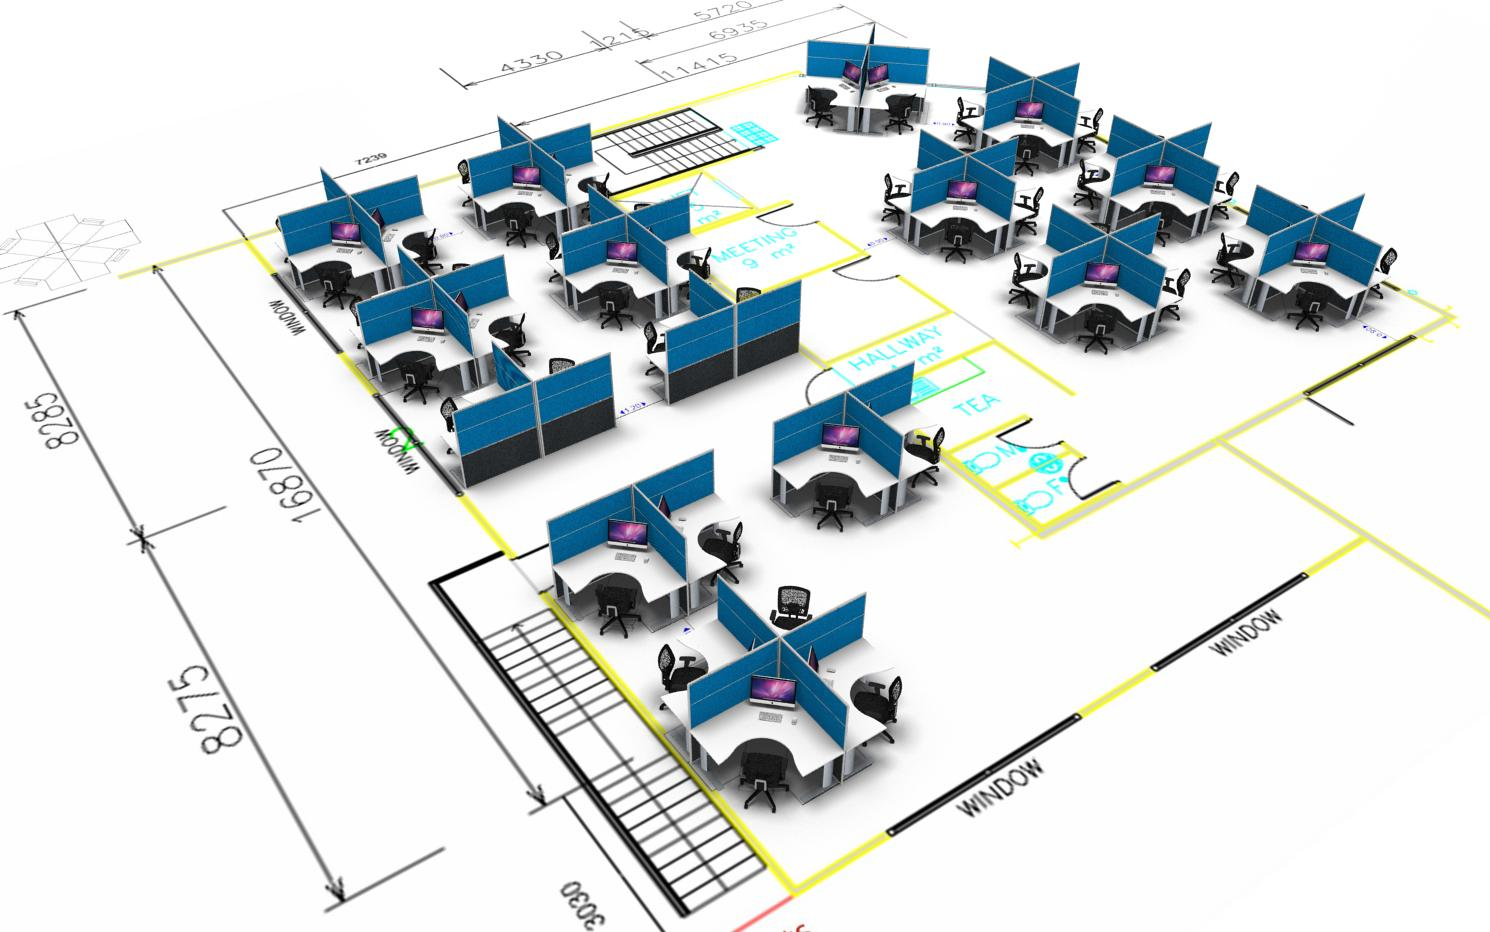 example of a concept design for office furniture